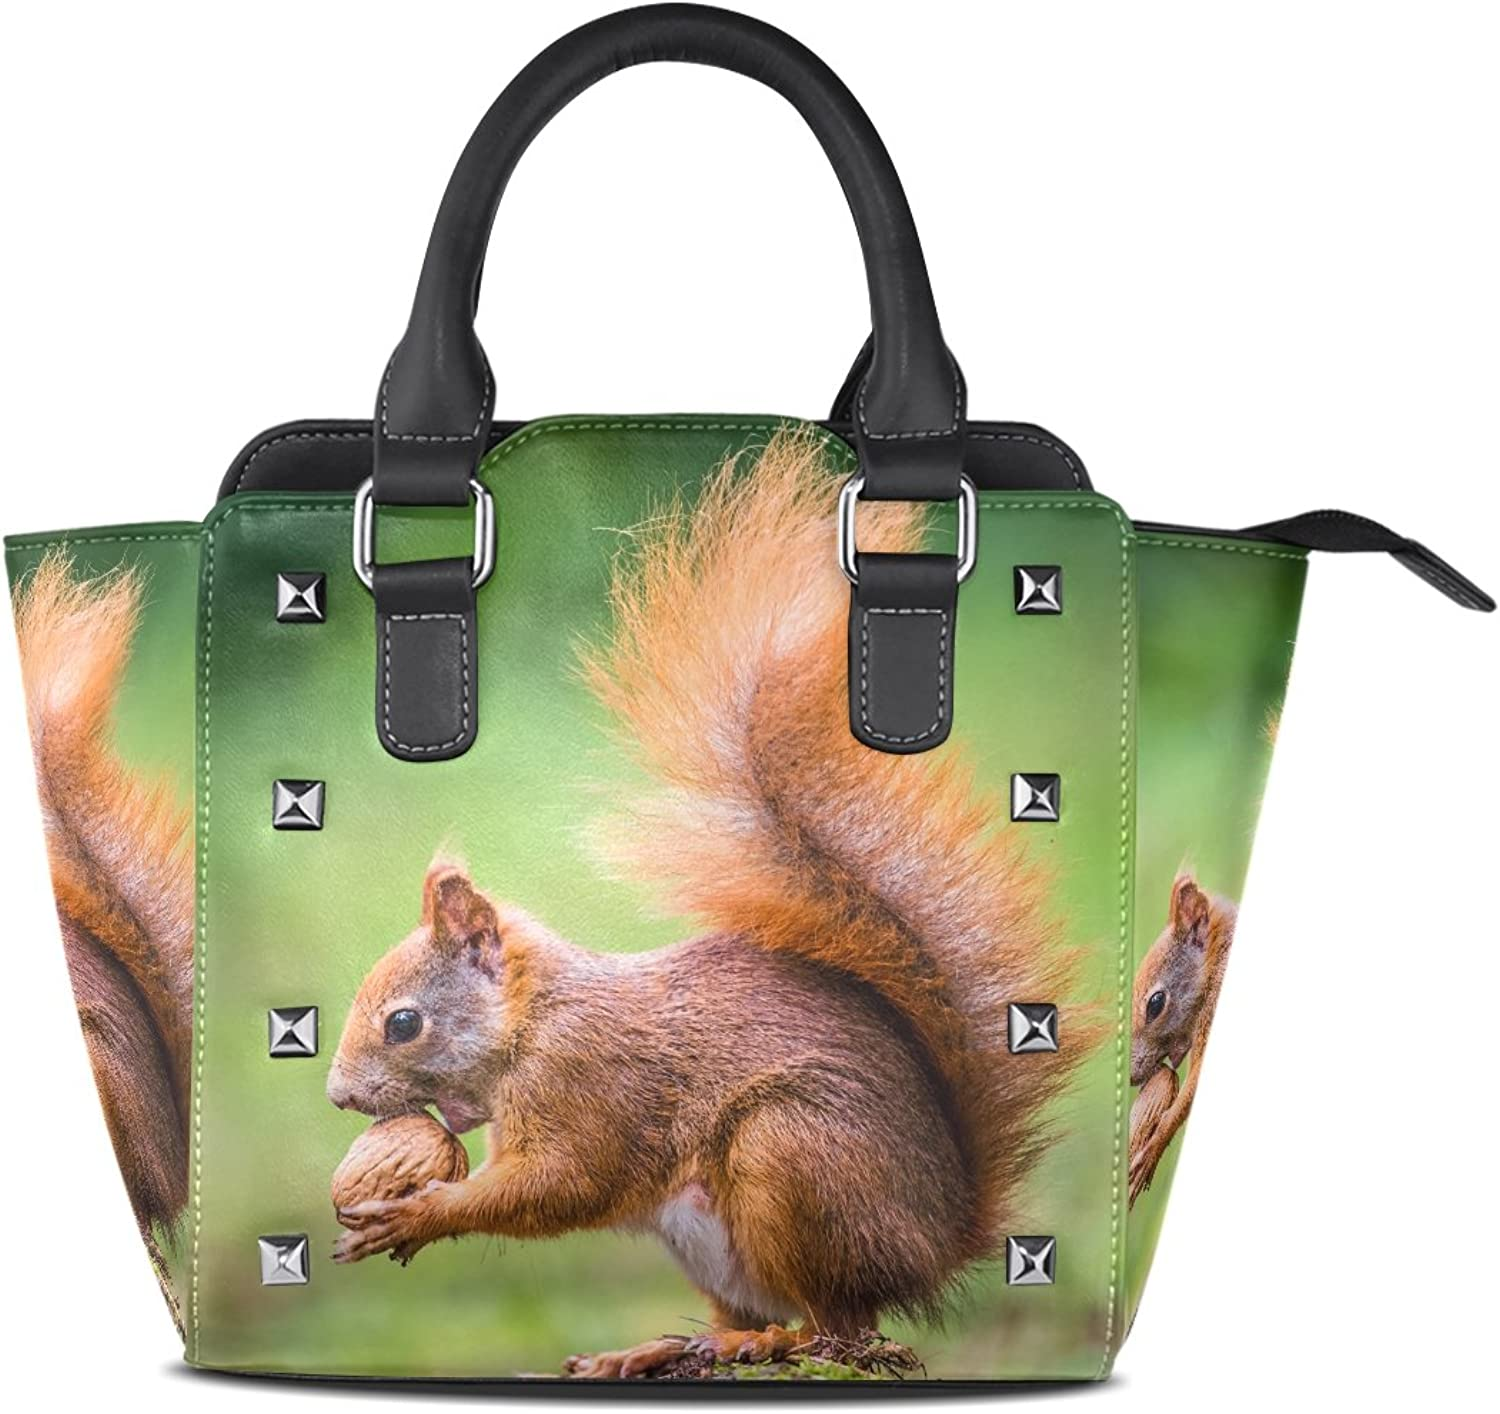 Sunlome Squirrel Eat Nut in Wild Nature Print Handbags Women's PU Leather Top-Handle Shoulder Bags